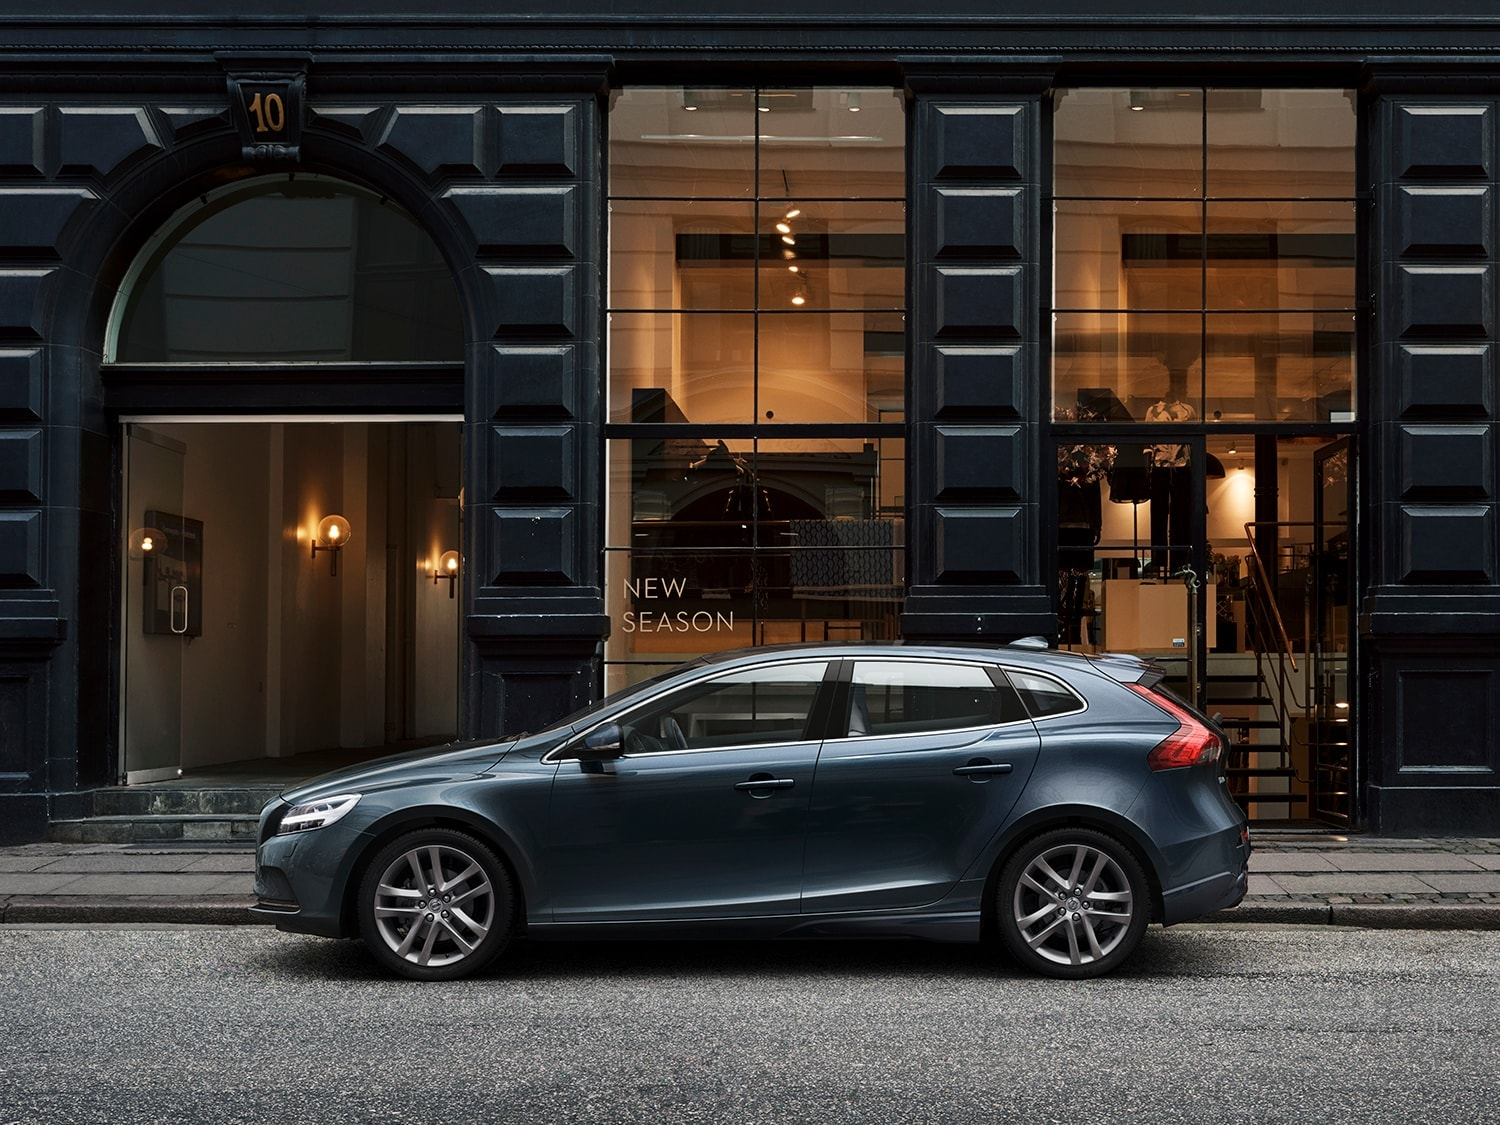 Volvo V40 parked in front of boutique